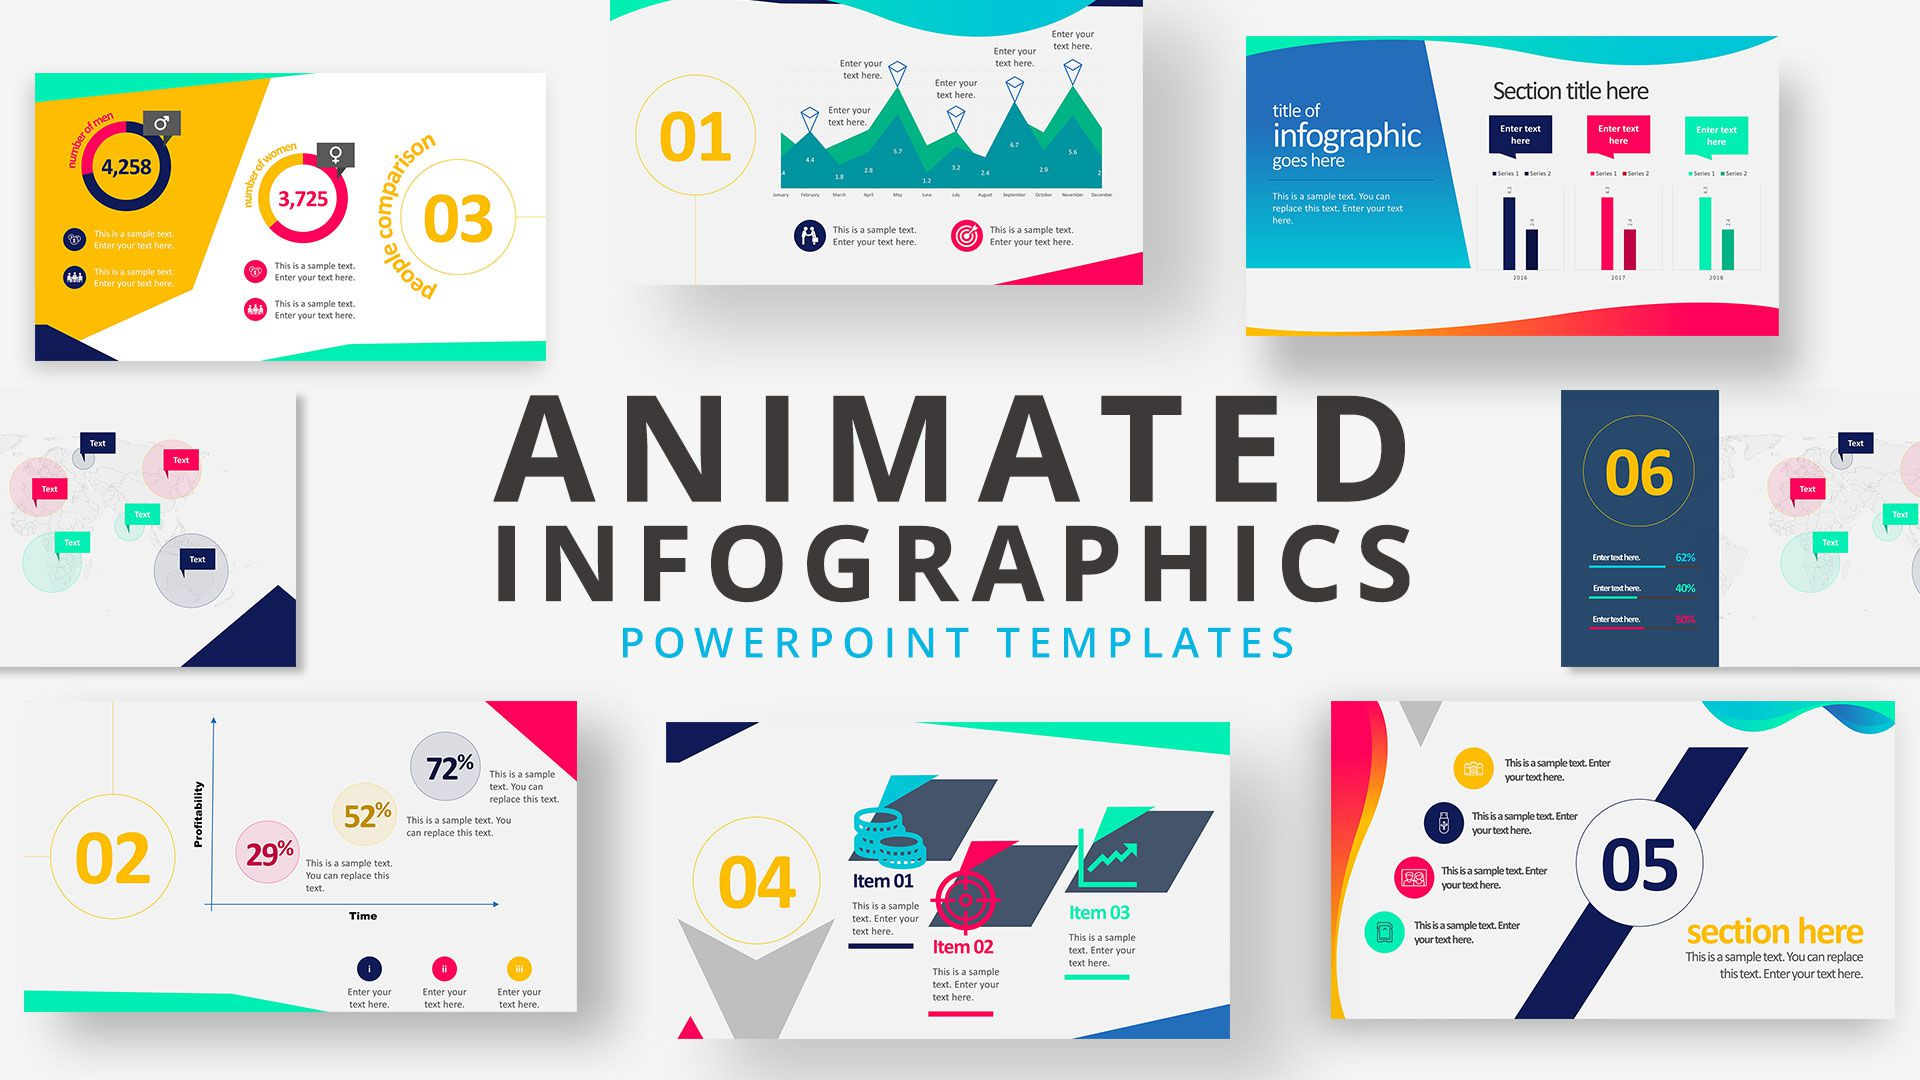 008 Impressive Animation Powerpoint Template Free Concept  Animated Download 2019 2010Full